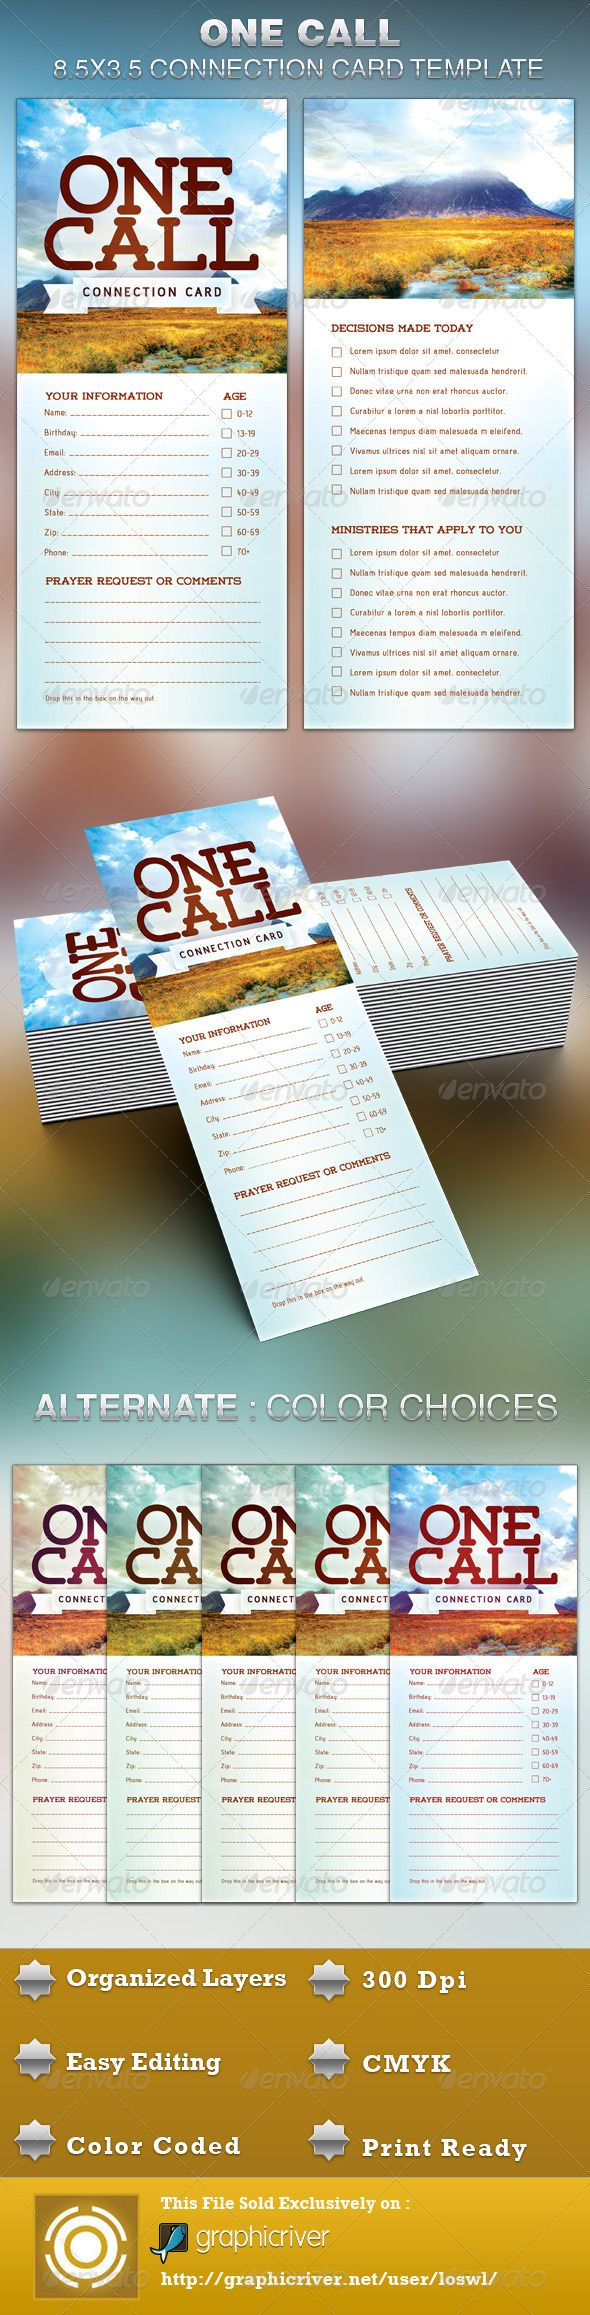 one call church connection card template card templates churches and purpose. Black Bedroom Furniture Sets. Home Design Ideas